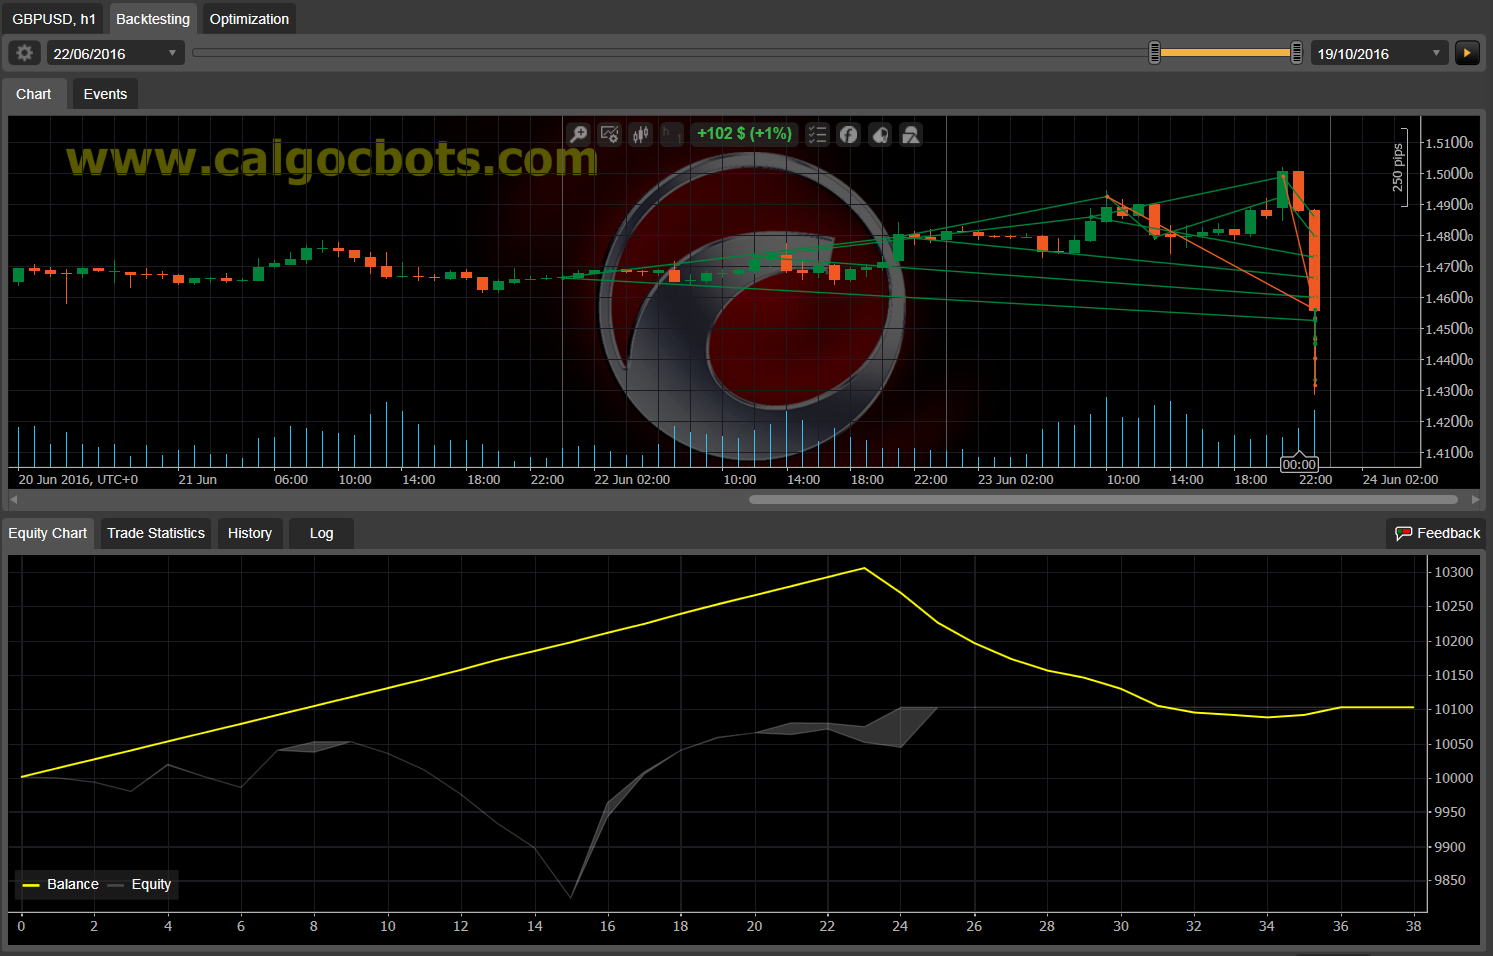 Dual Grid Hedge GBP USD 1h cAlgo cBots cTrader 1k 100 50 100 - 11 c